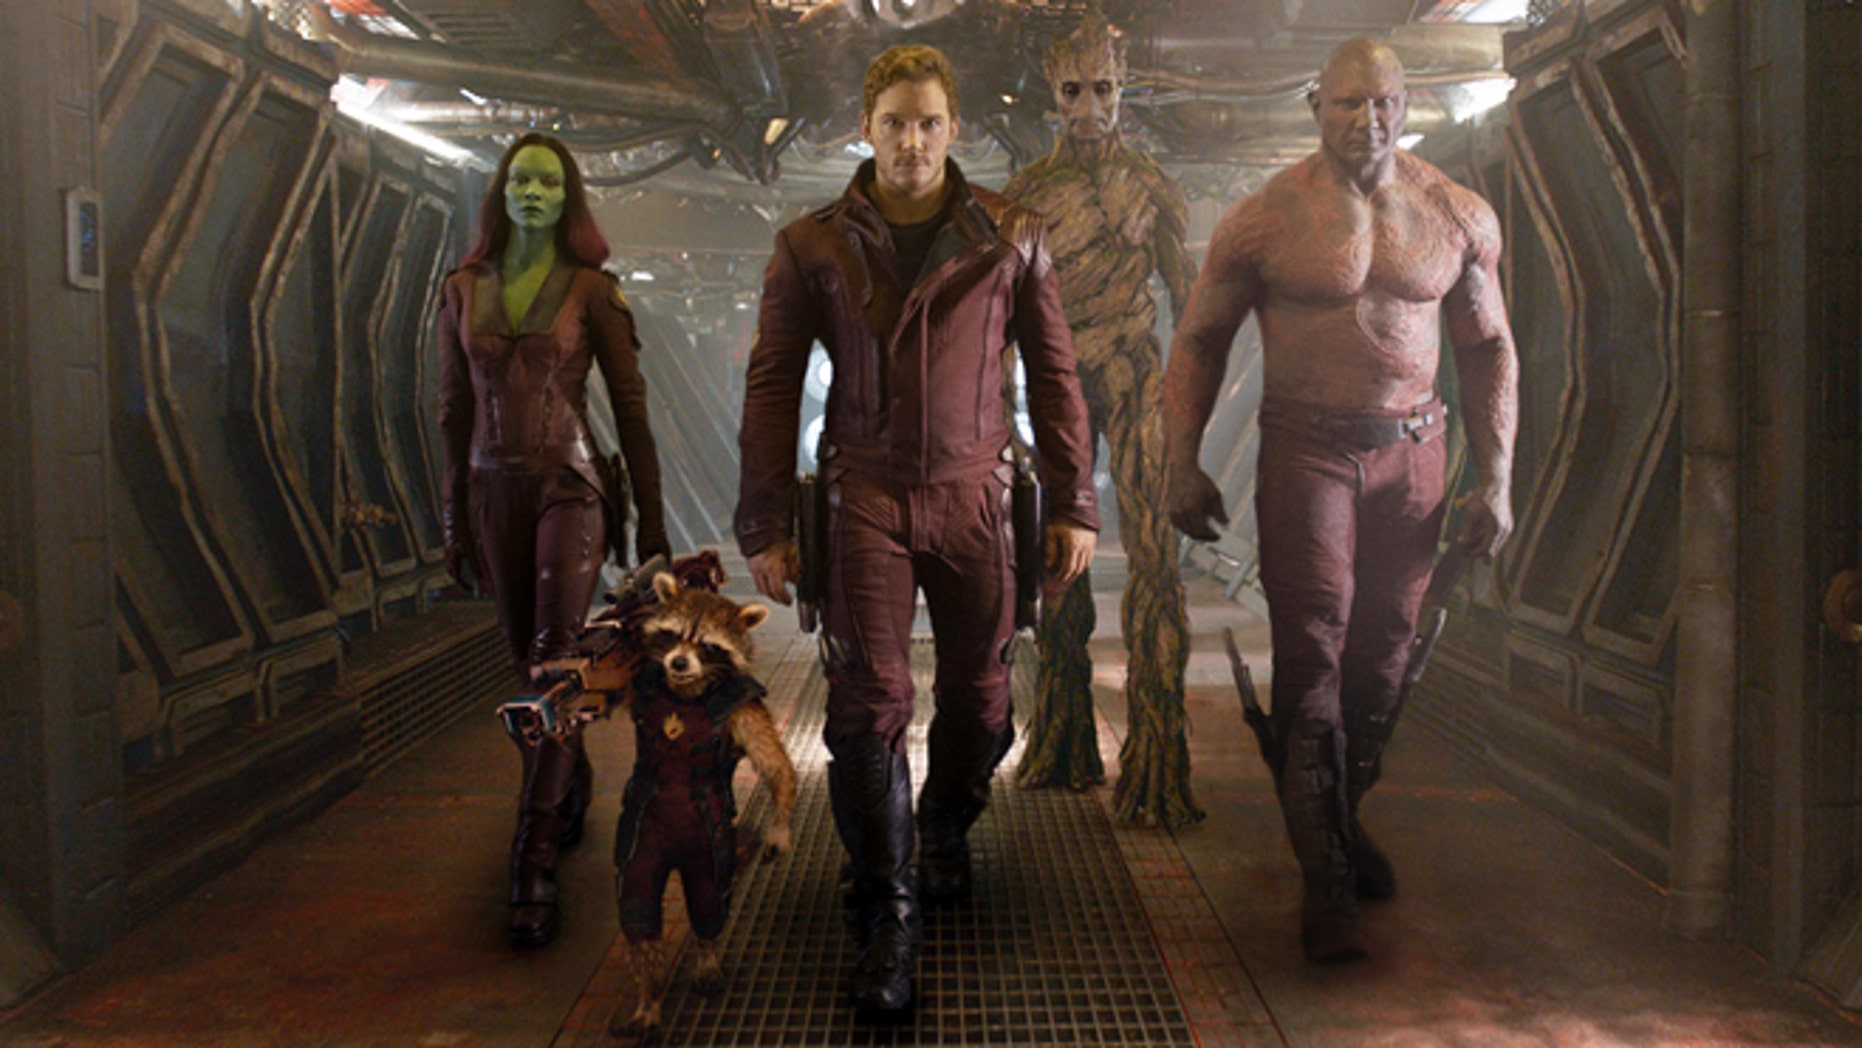 """This image released by Disney - Marvel shows, from left, Zoe Saldana, the character Rocket Racoon, voiced by Bradley Cooper, Chris Pratt, the character Groot, voiced by Vin Diesel and Dave Bautista in a scene from """"Guardians of the Galaxy."""" (AP Photo/Disney - Marvel)"""